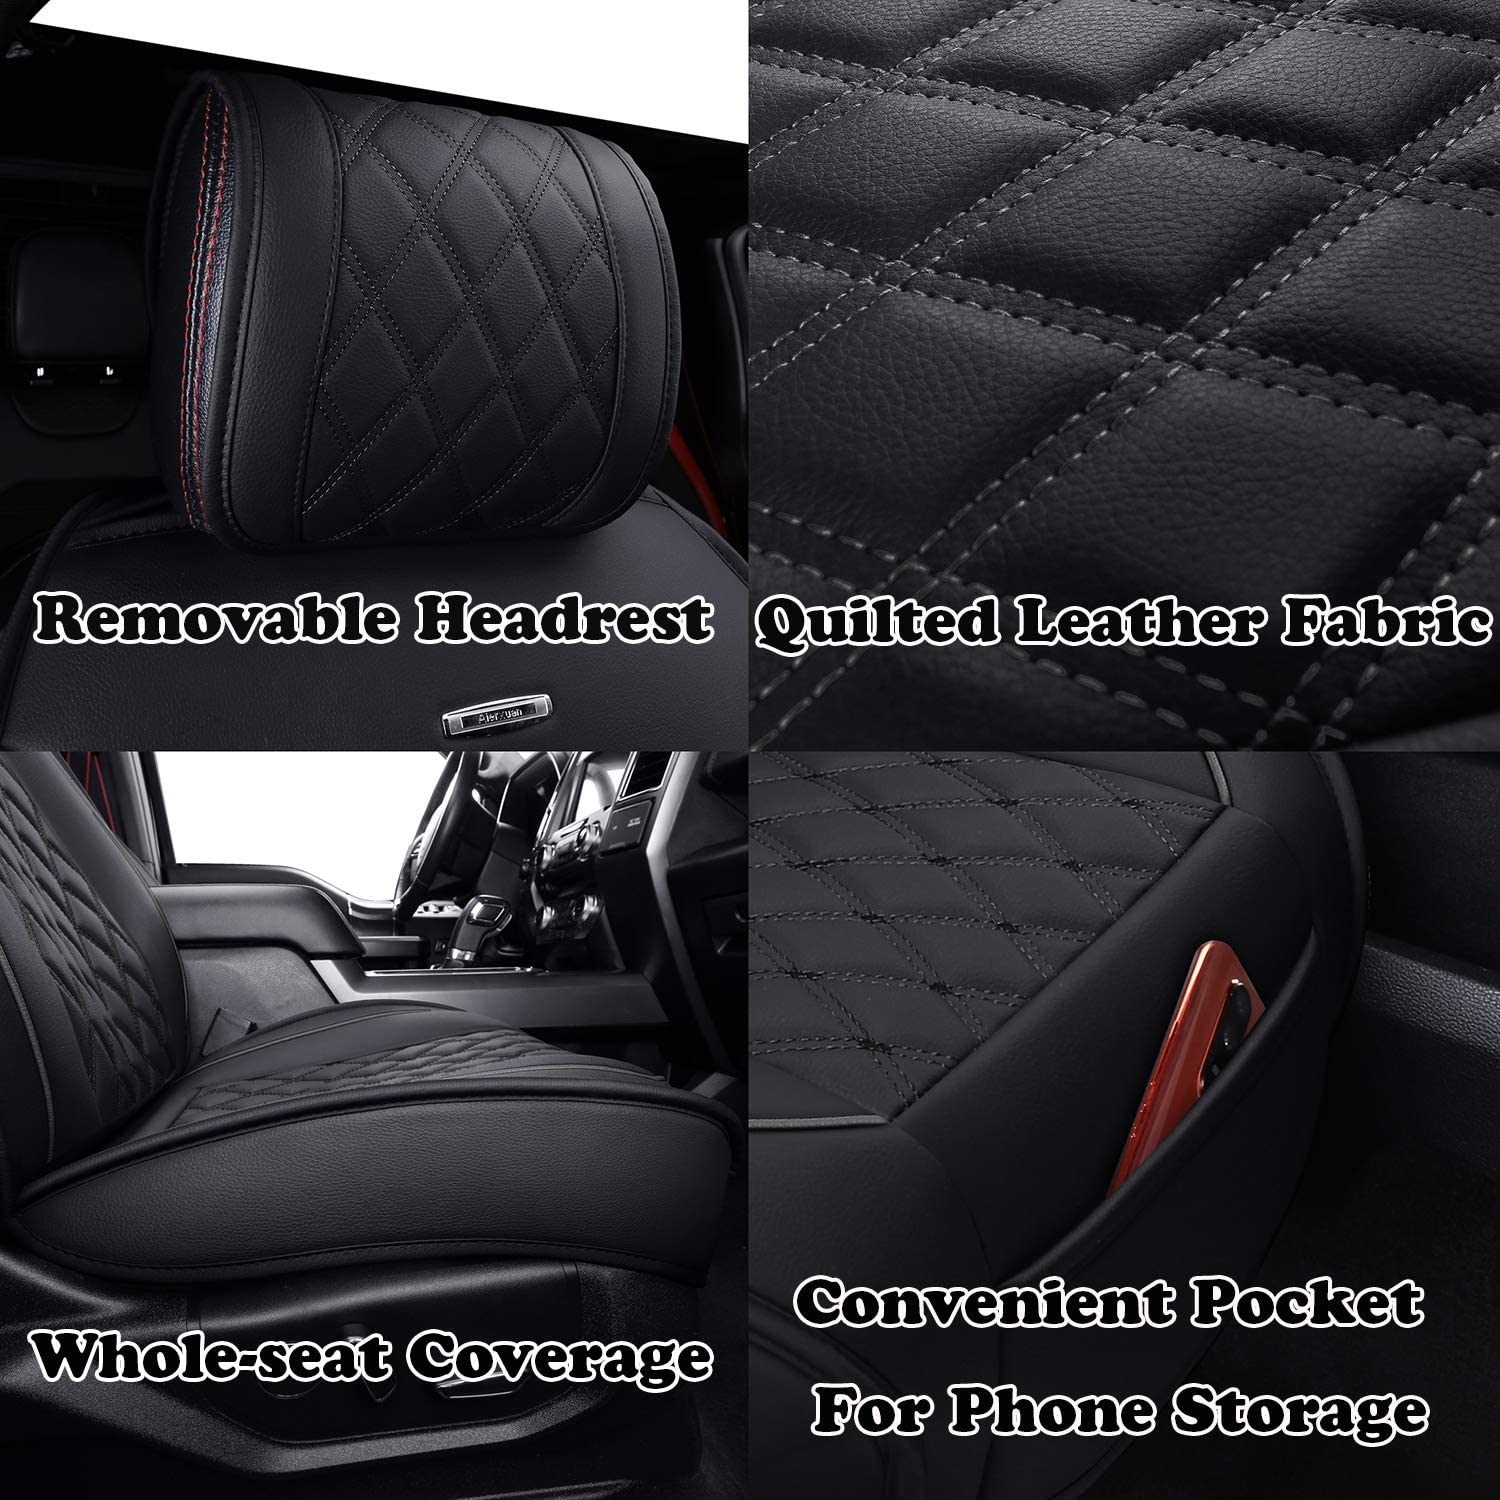 Automotive Vehicle Cushion Cover for Cars SUV Pick-up Truck Fit for 2015 to 2020 Ford F150 and 2017 to 2020 F250 F350 F450 Aierxuan Car Seat Covers Full Set with Waterproof Leather Black and Blue